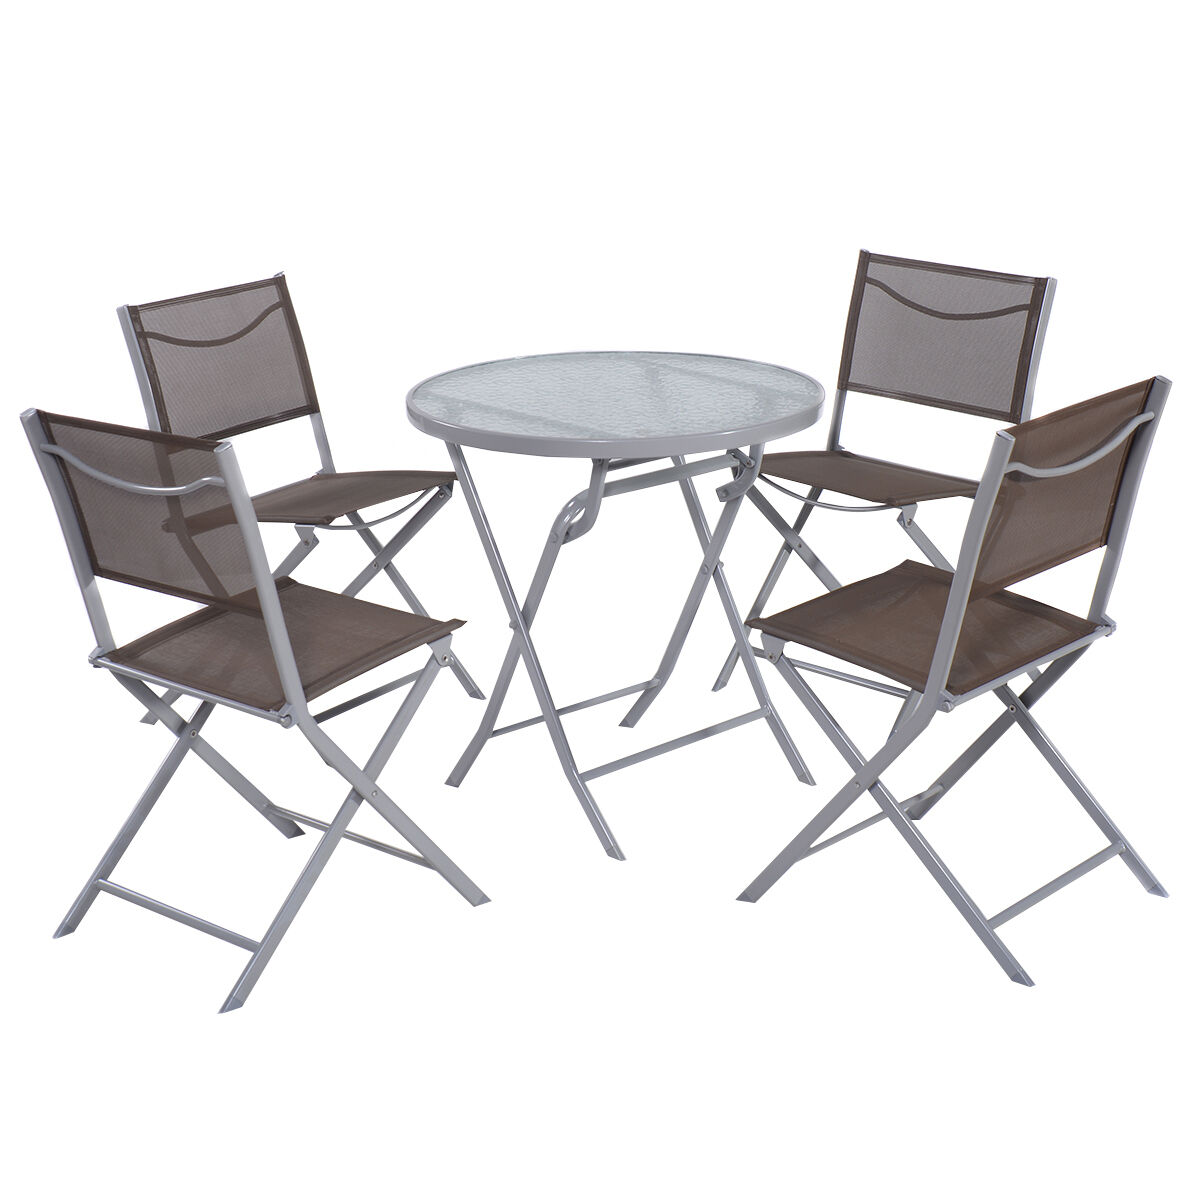 Picture 1 of 10 ...  sc 1 st  eBay & Giantex 5 Pcs Bistro Set Garden 4 Folding Chairs Table Outdoor Patio ...